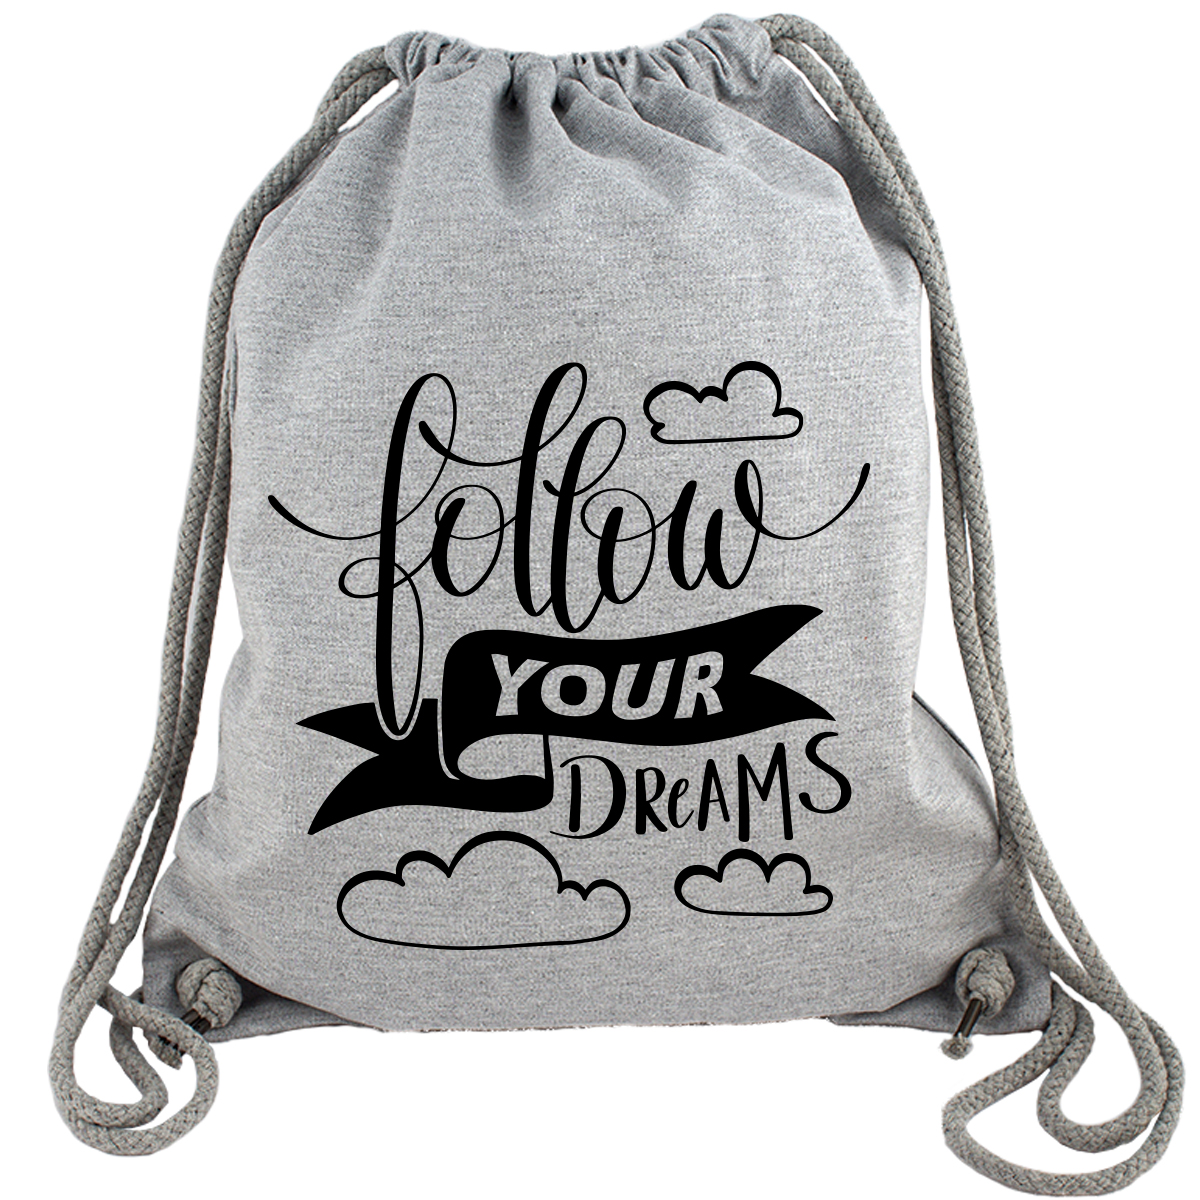 Follow Your Dreams - Gym Bag Turnbeutel